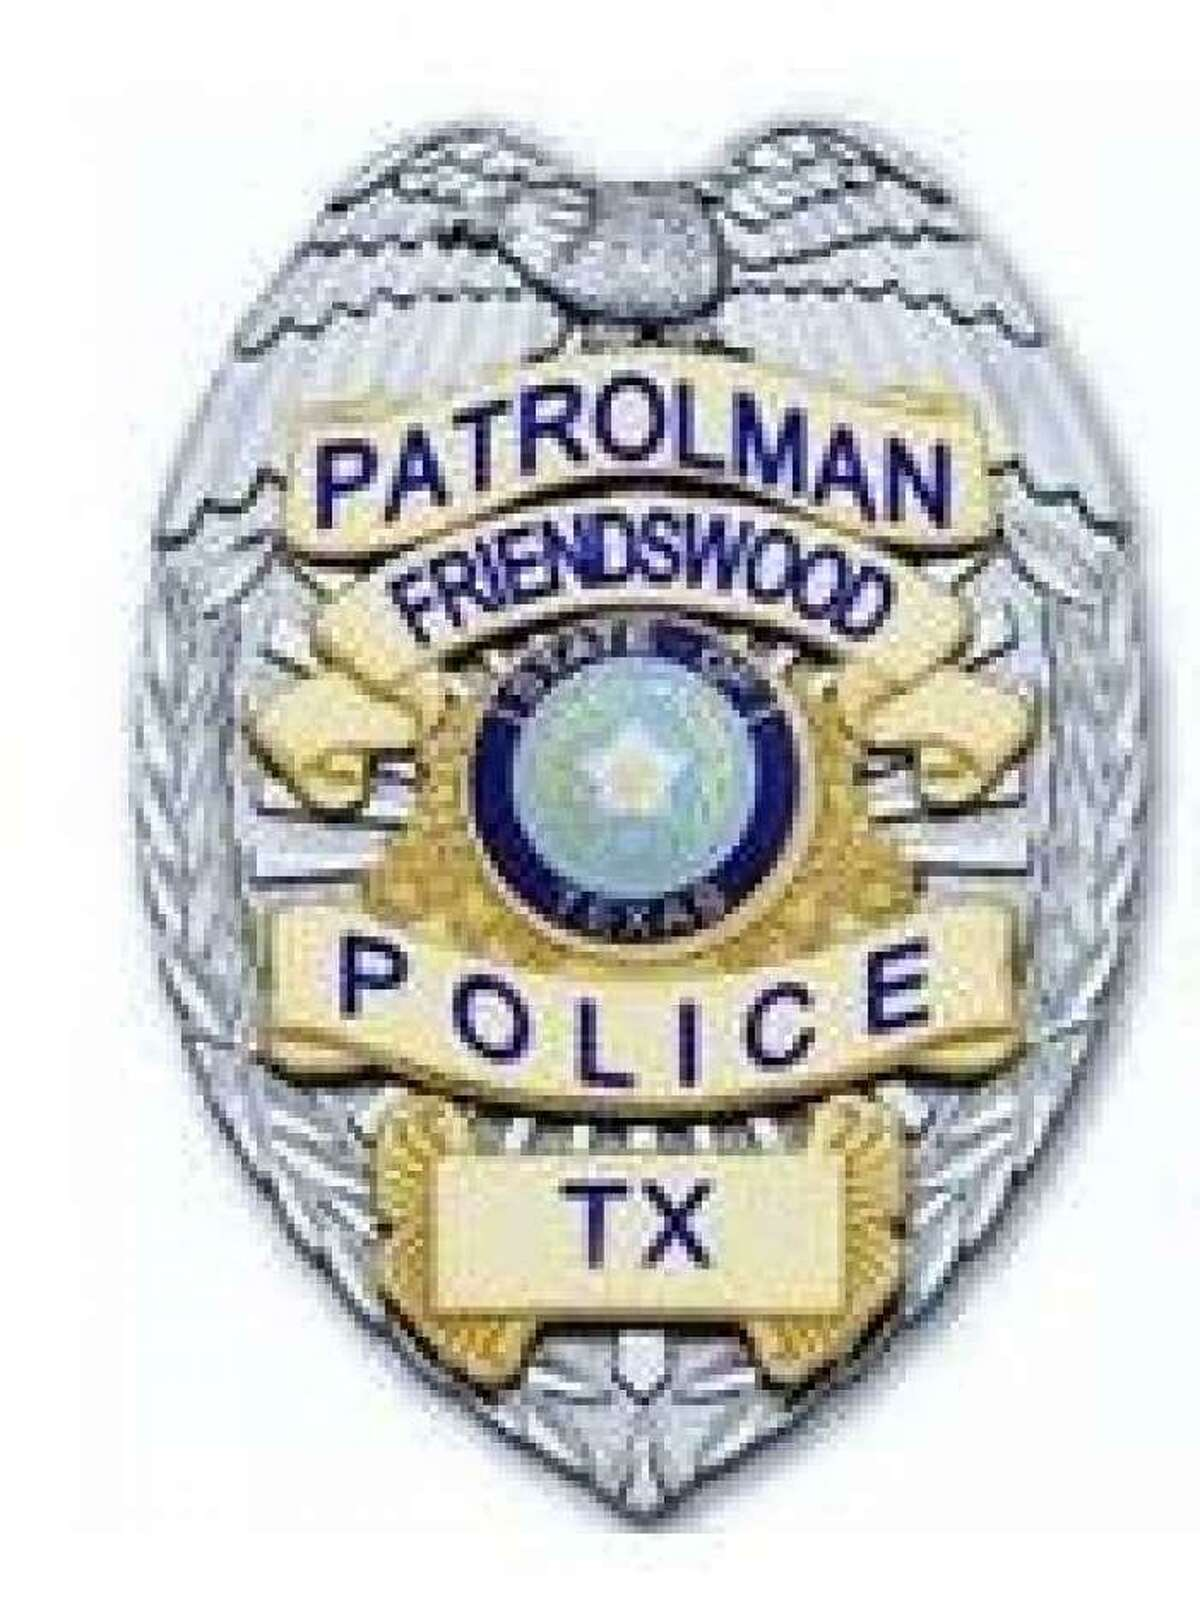 A 23-year-old Pasadena man landed in Harris County jail without bond after he was found asleep in a stolen minivan linked to a Feb. 10 purse-snatching at a Friendswood H-E-B grocery, Friendswood police said.